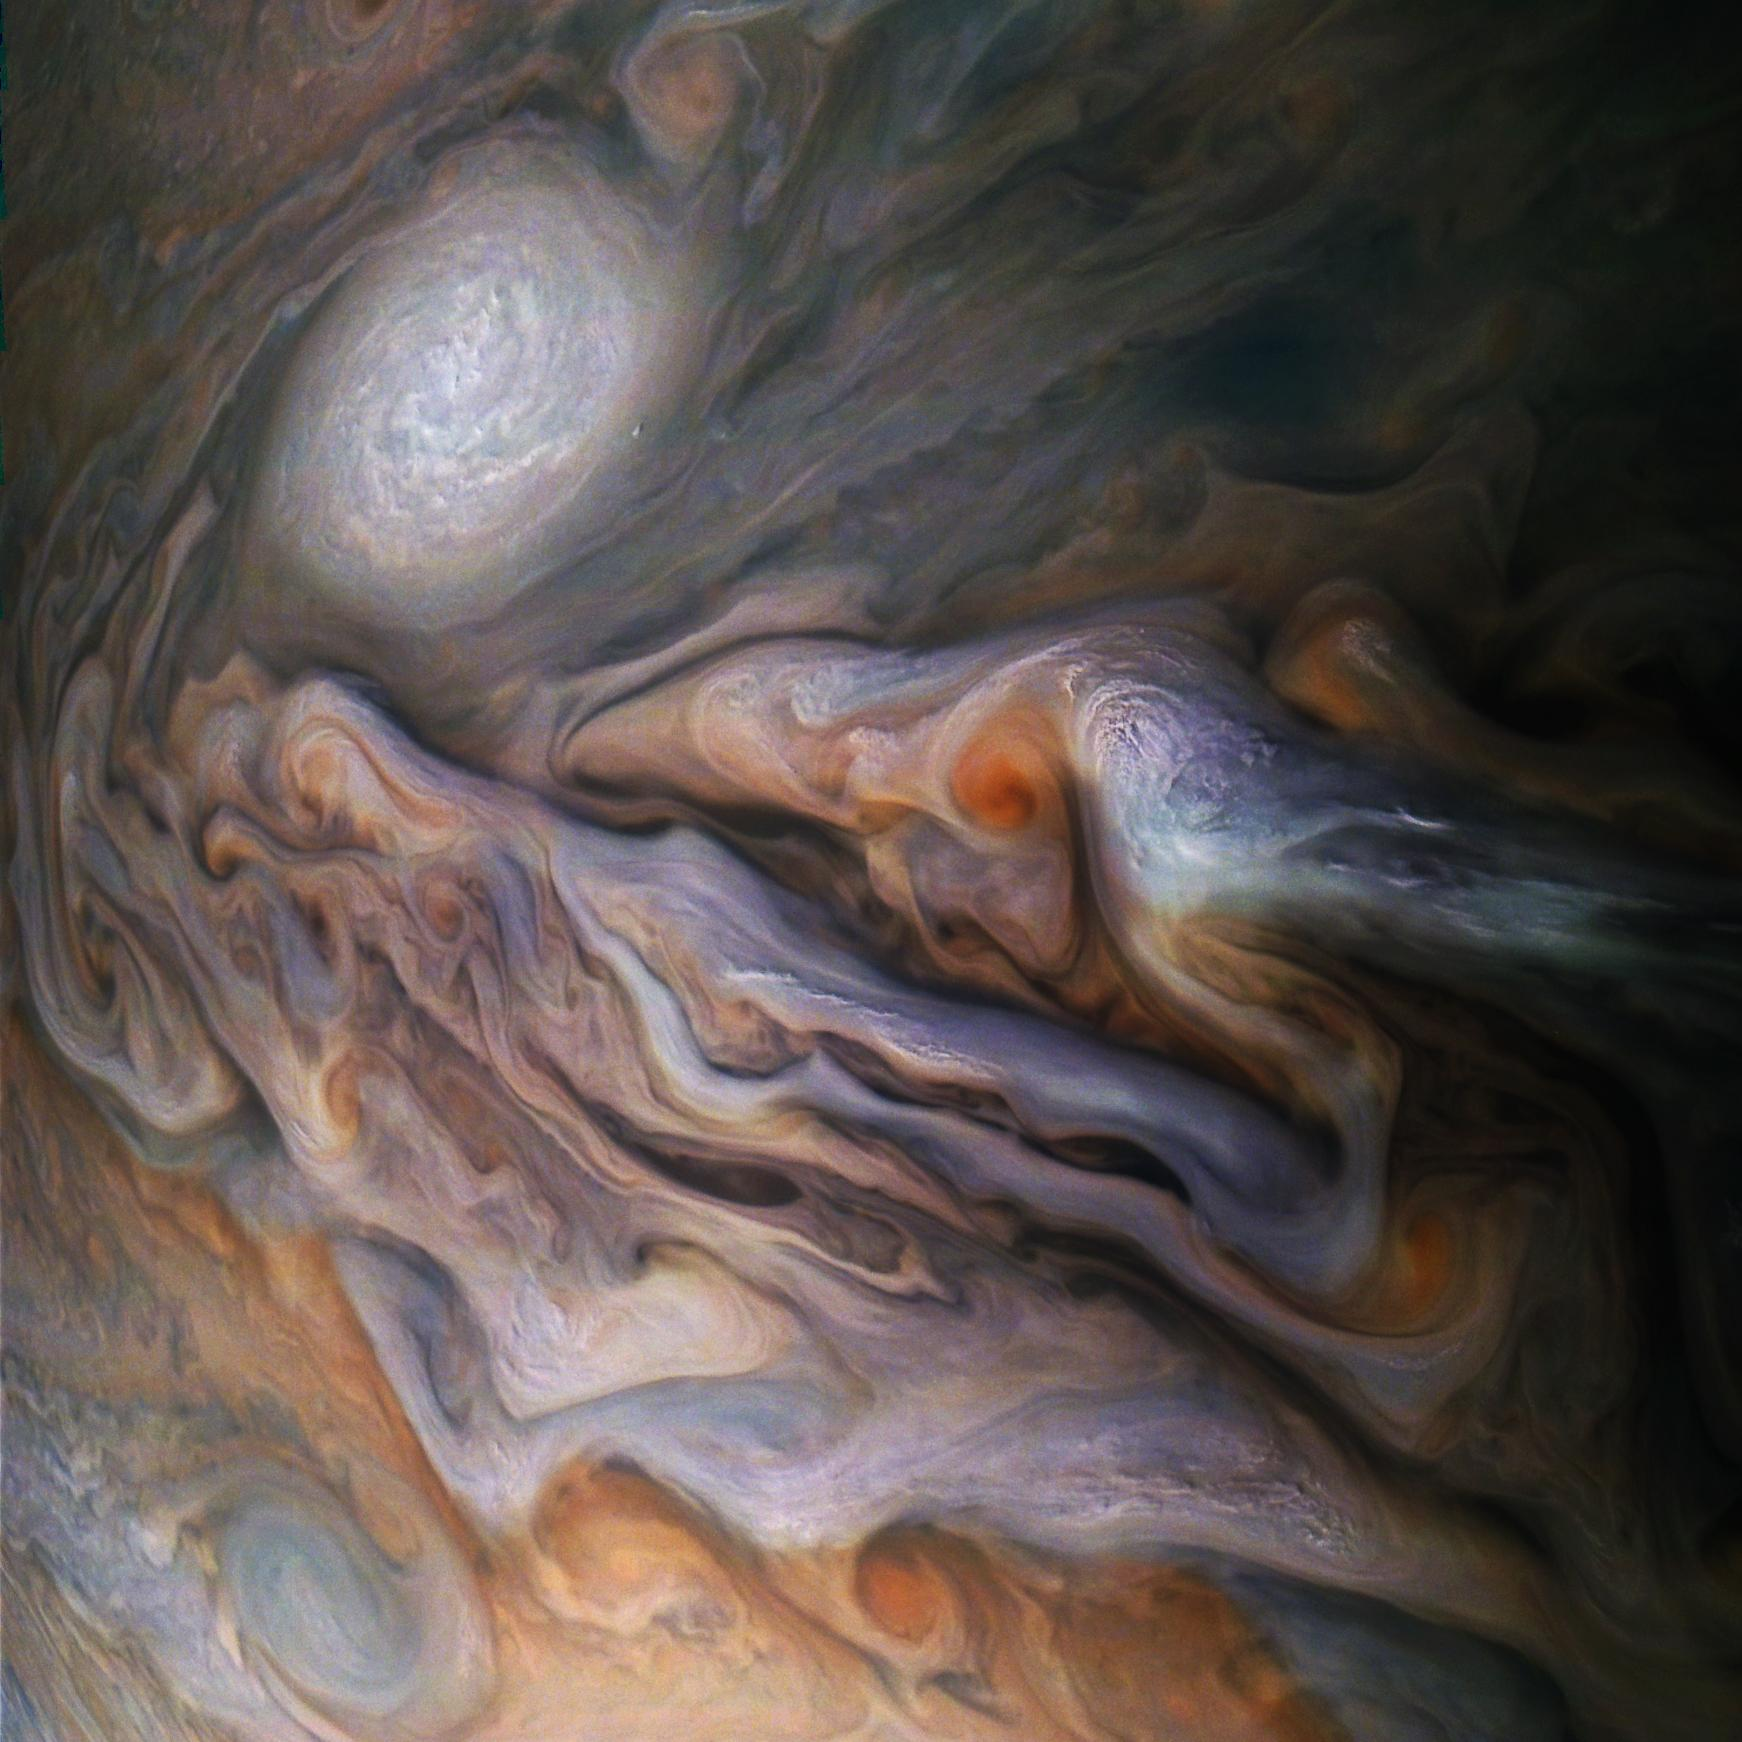 Jupiter's Magnificent Swirling Clouds